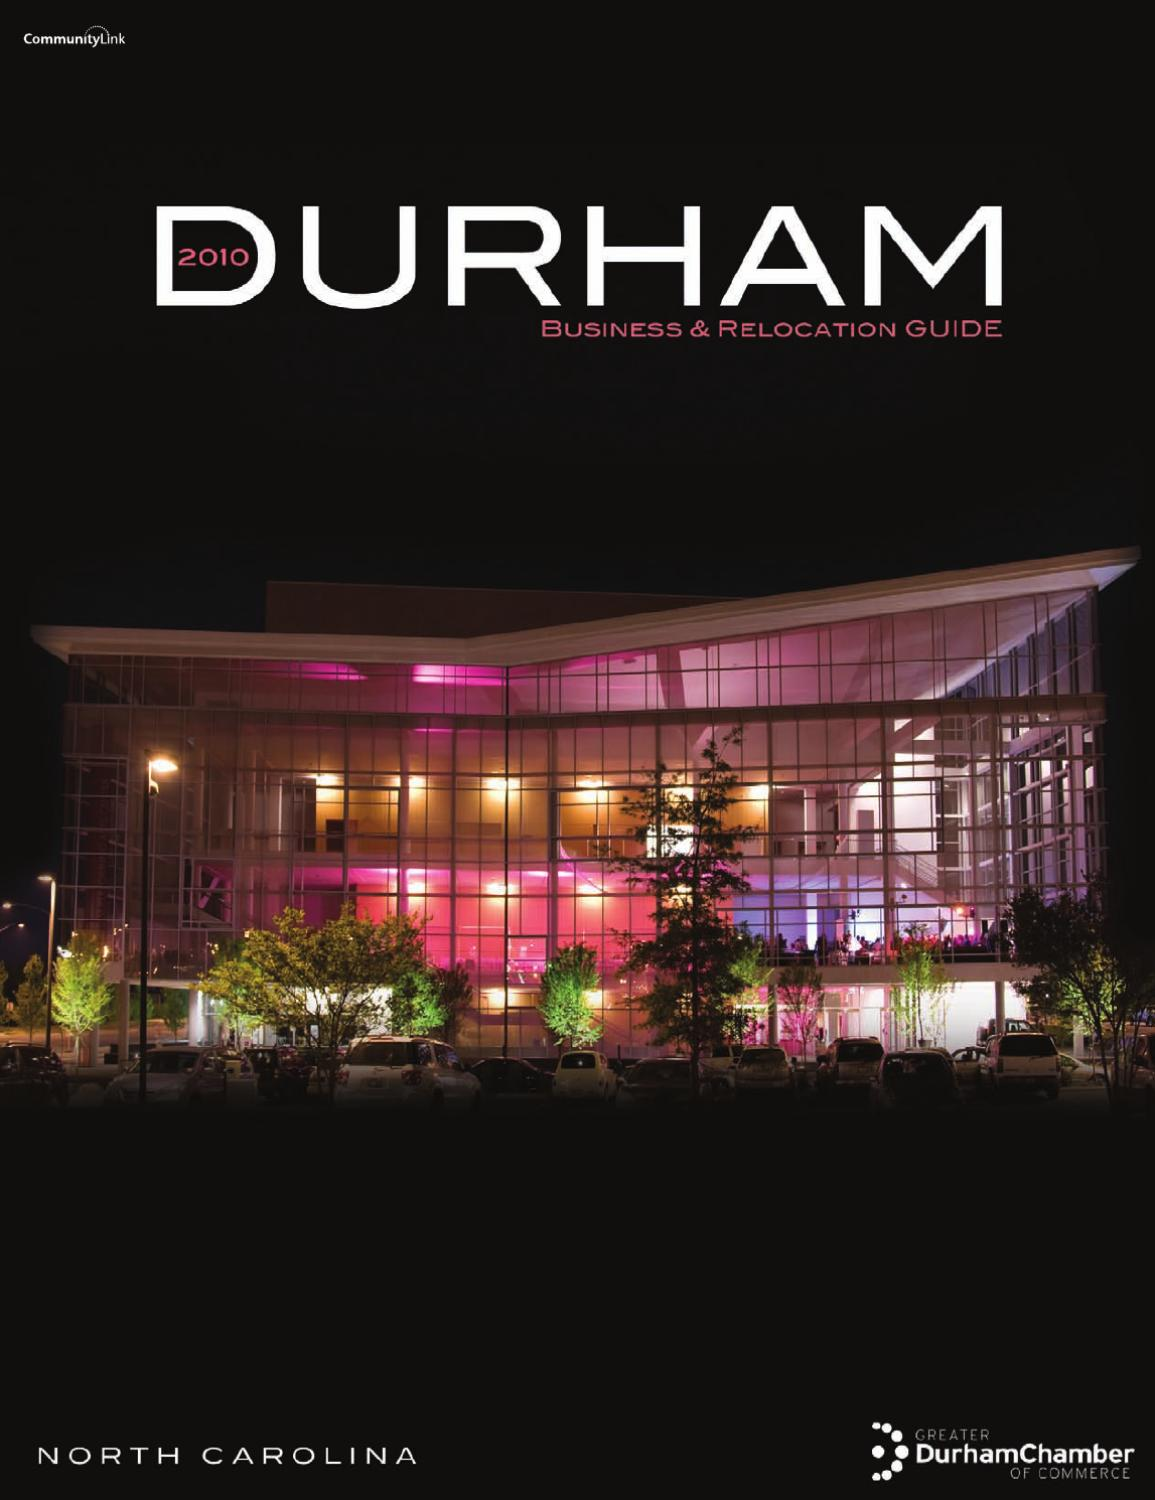 westerville chamber 2016 by cityscene media group issuu durham nc 2010 business and relocation guide